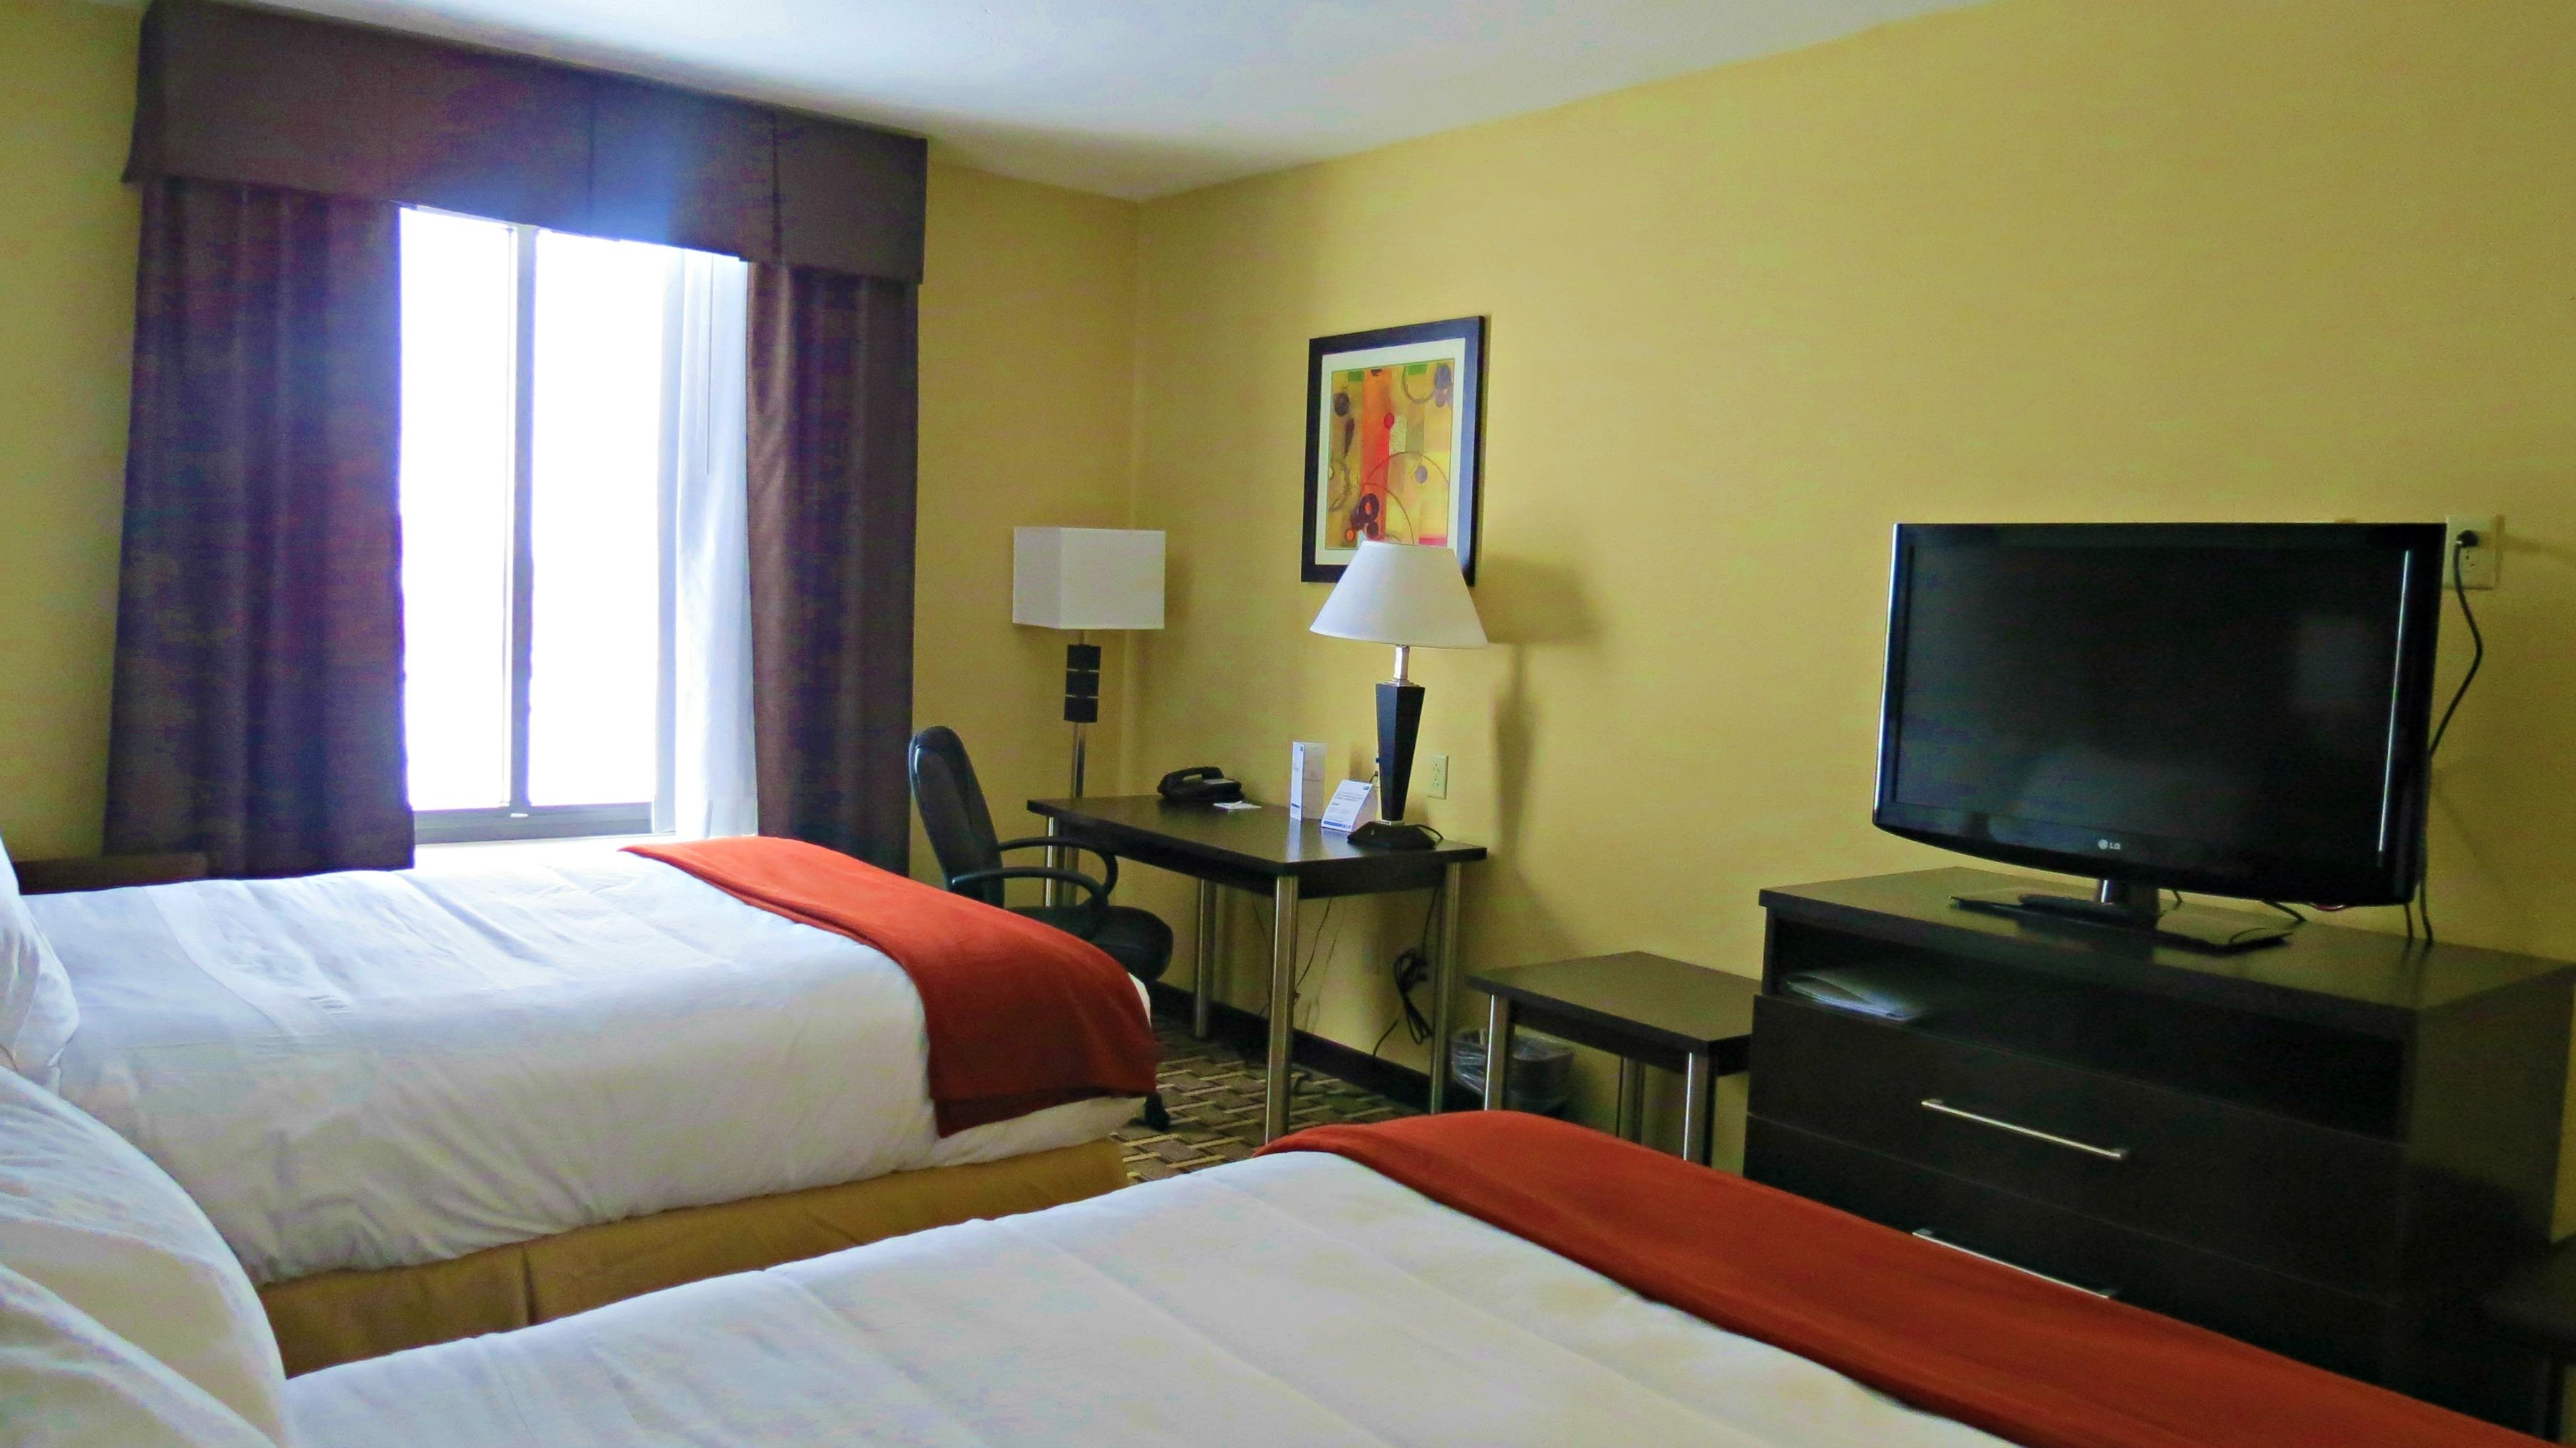 Holiday Inn Express & Suites image 12